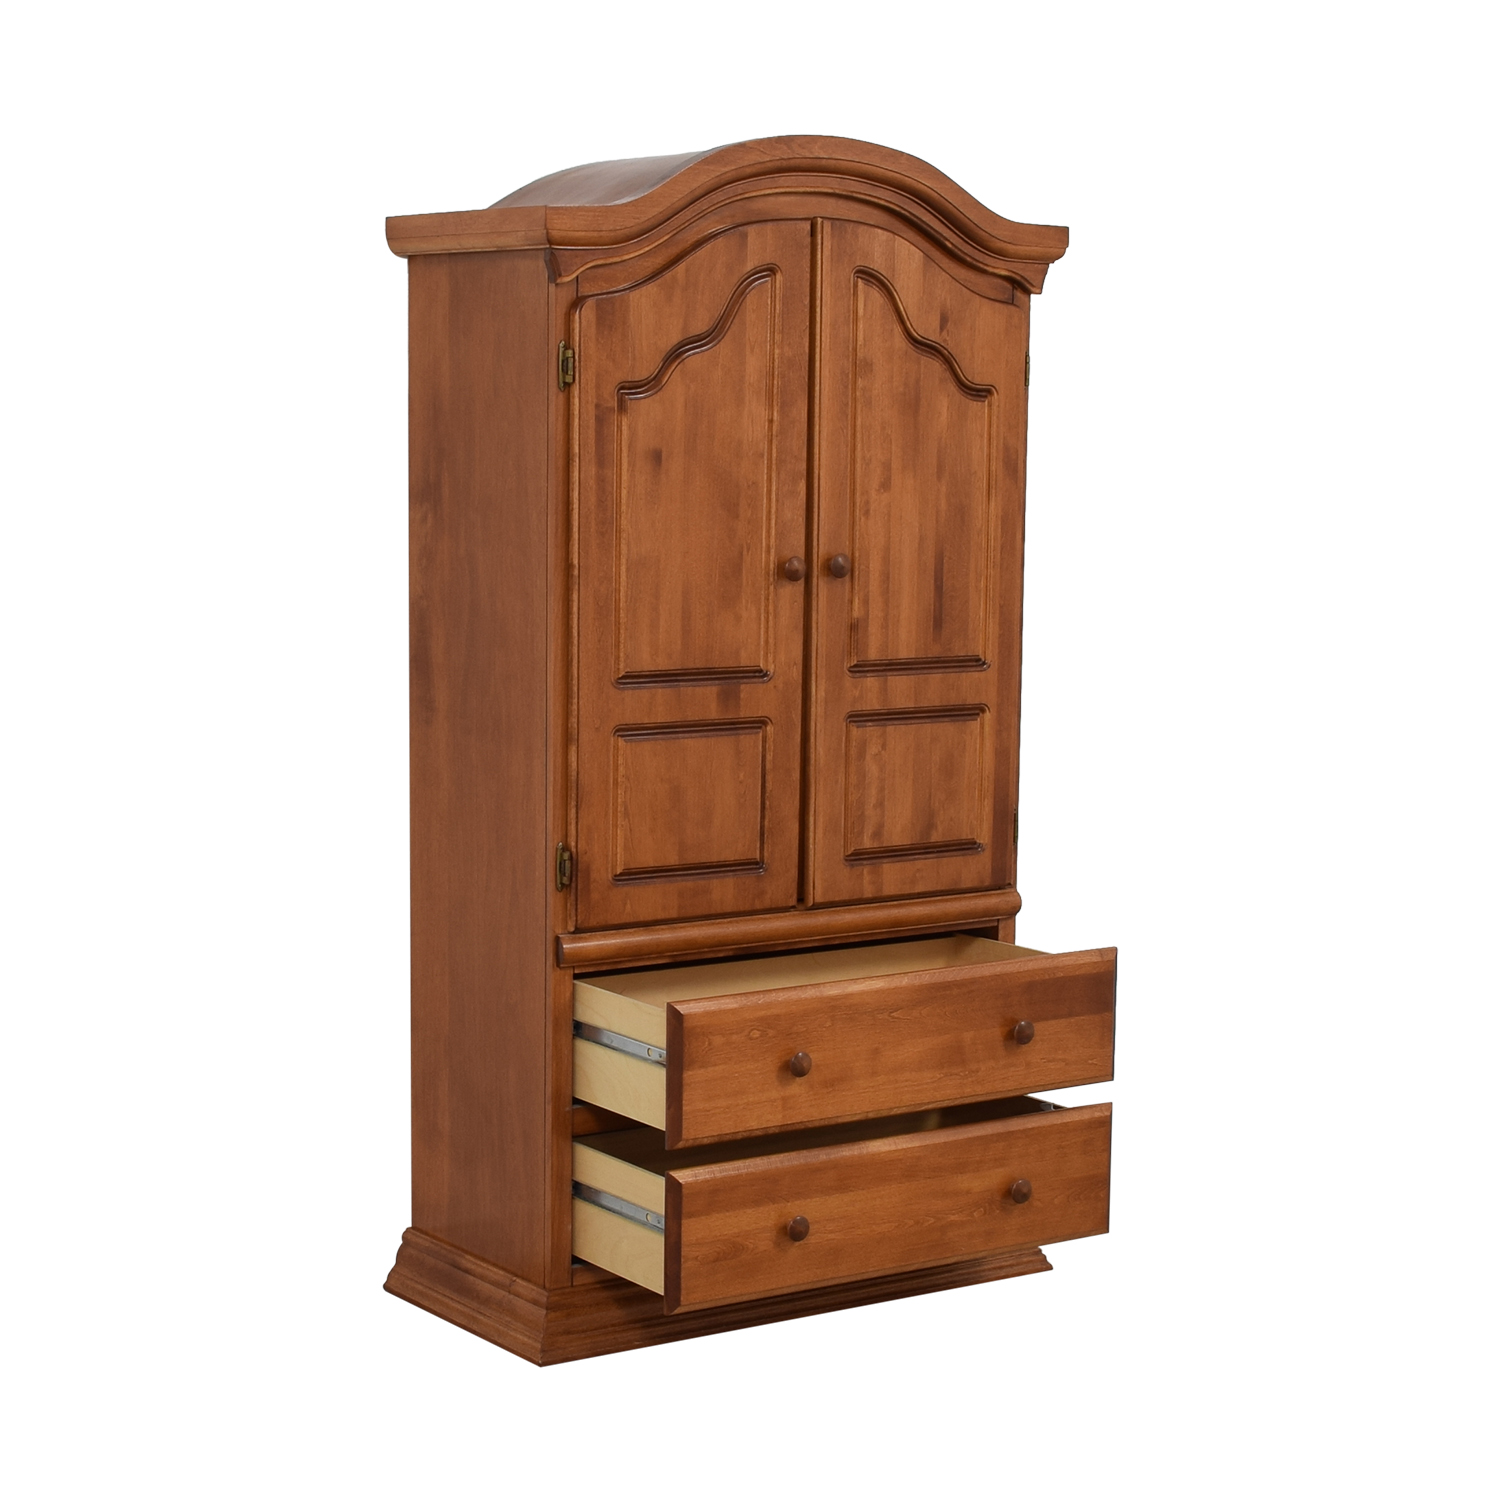 Bellini Bellini Two-Drawer Wood Clothing Armoire Storage